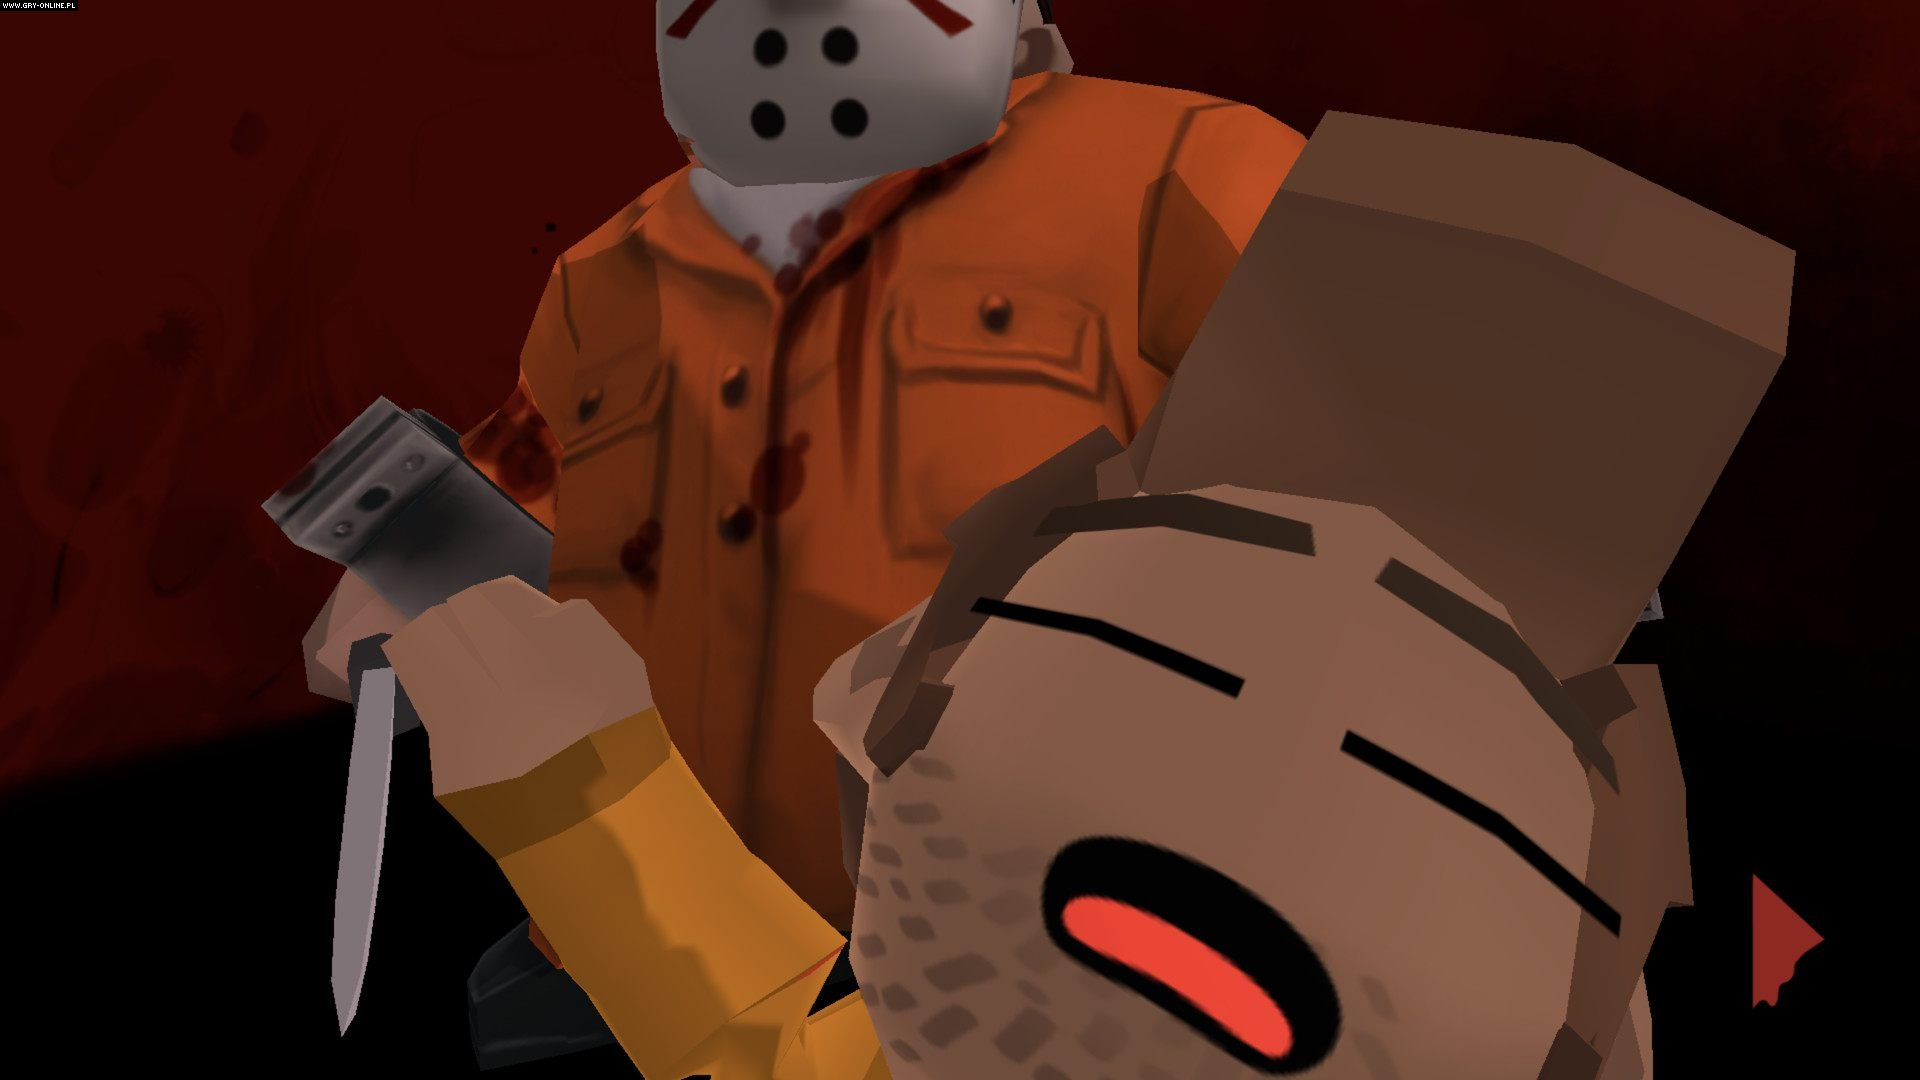 Friday the 13th: Killer Puzzle PC, AND, iOS Gry Screen 6/22, Blue Wizard Digital